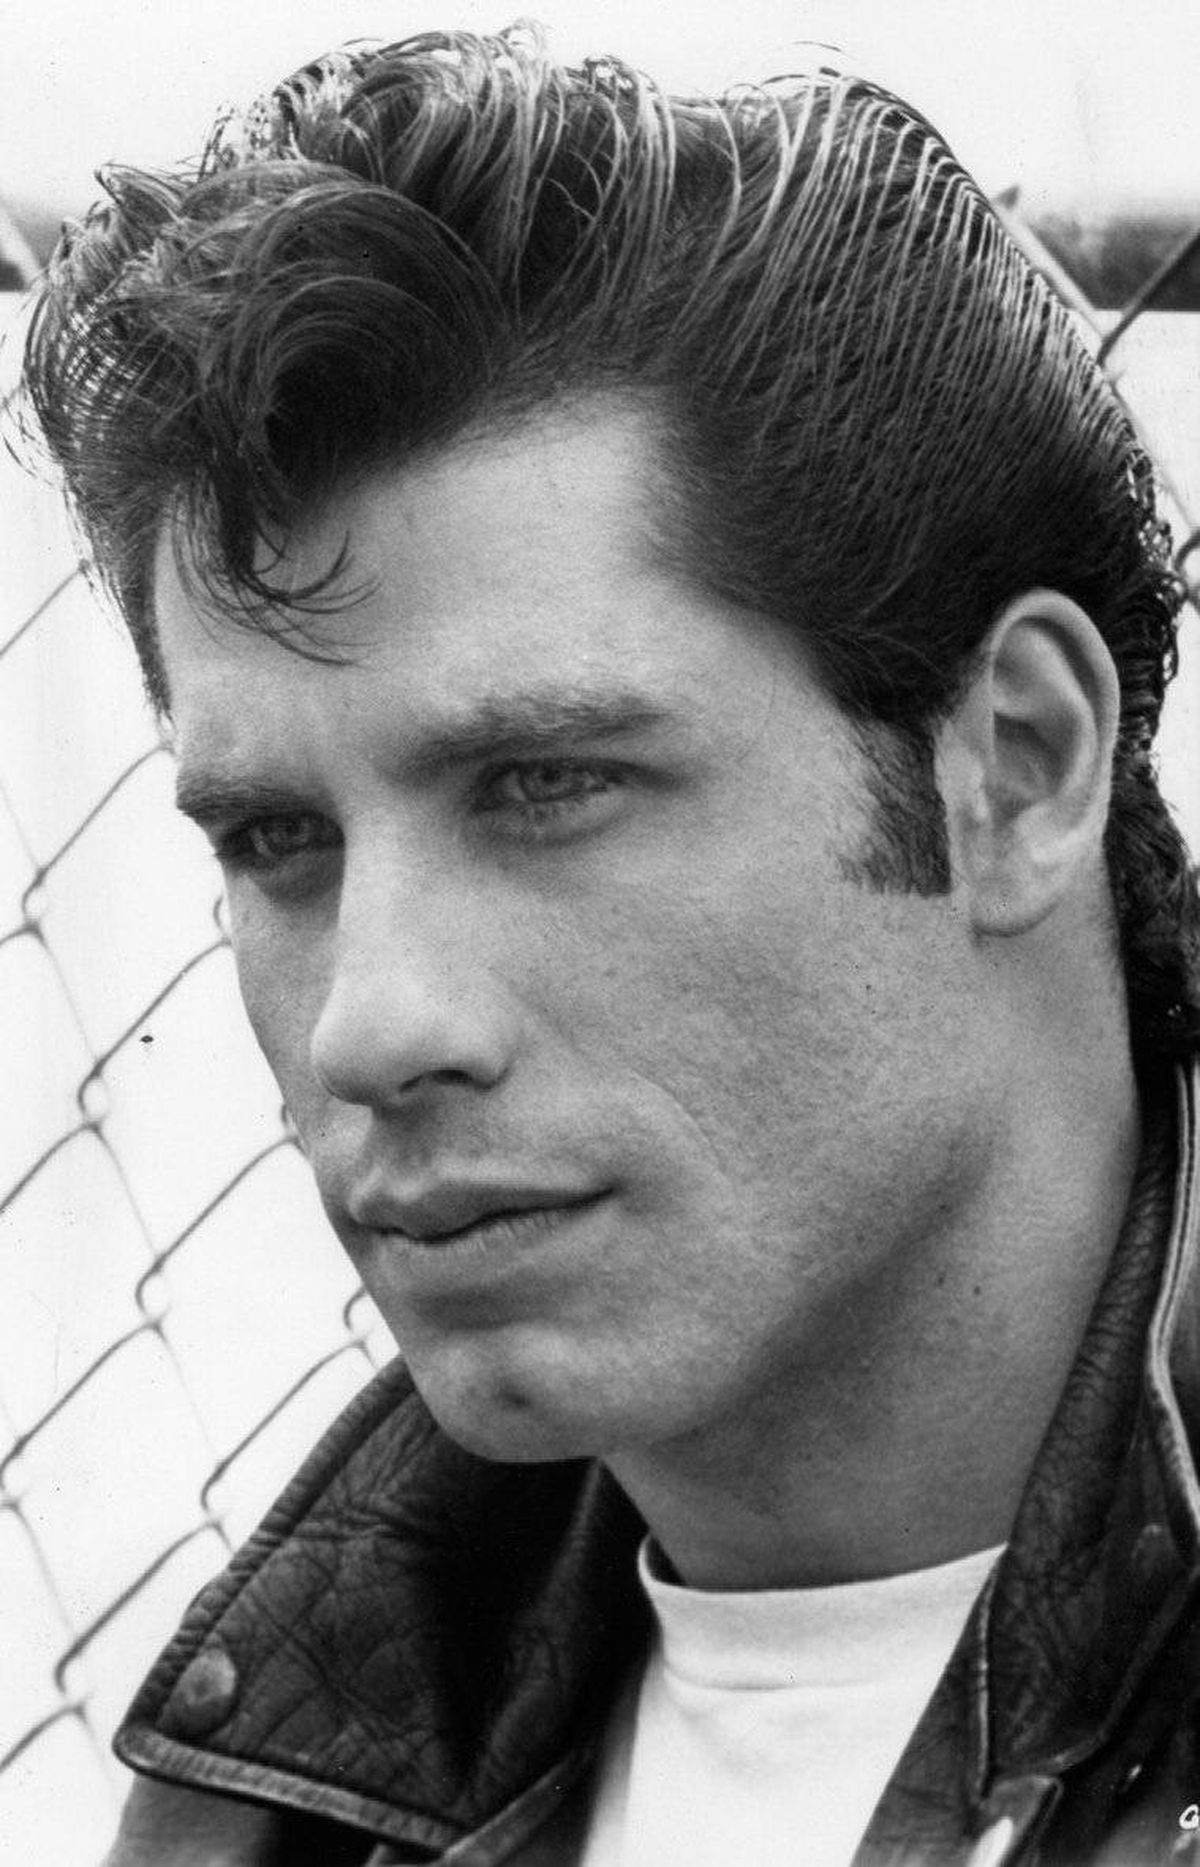 John Travolta: Greased lightning